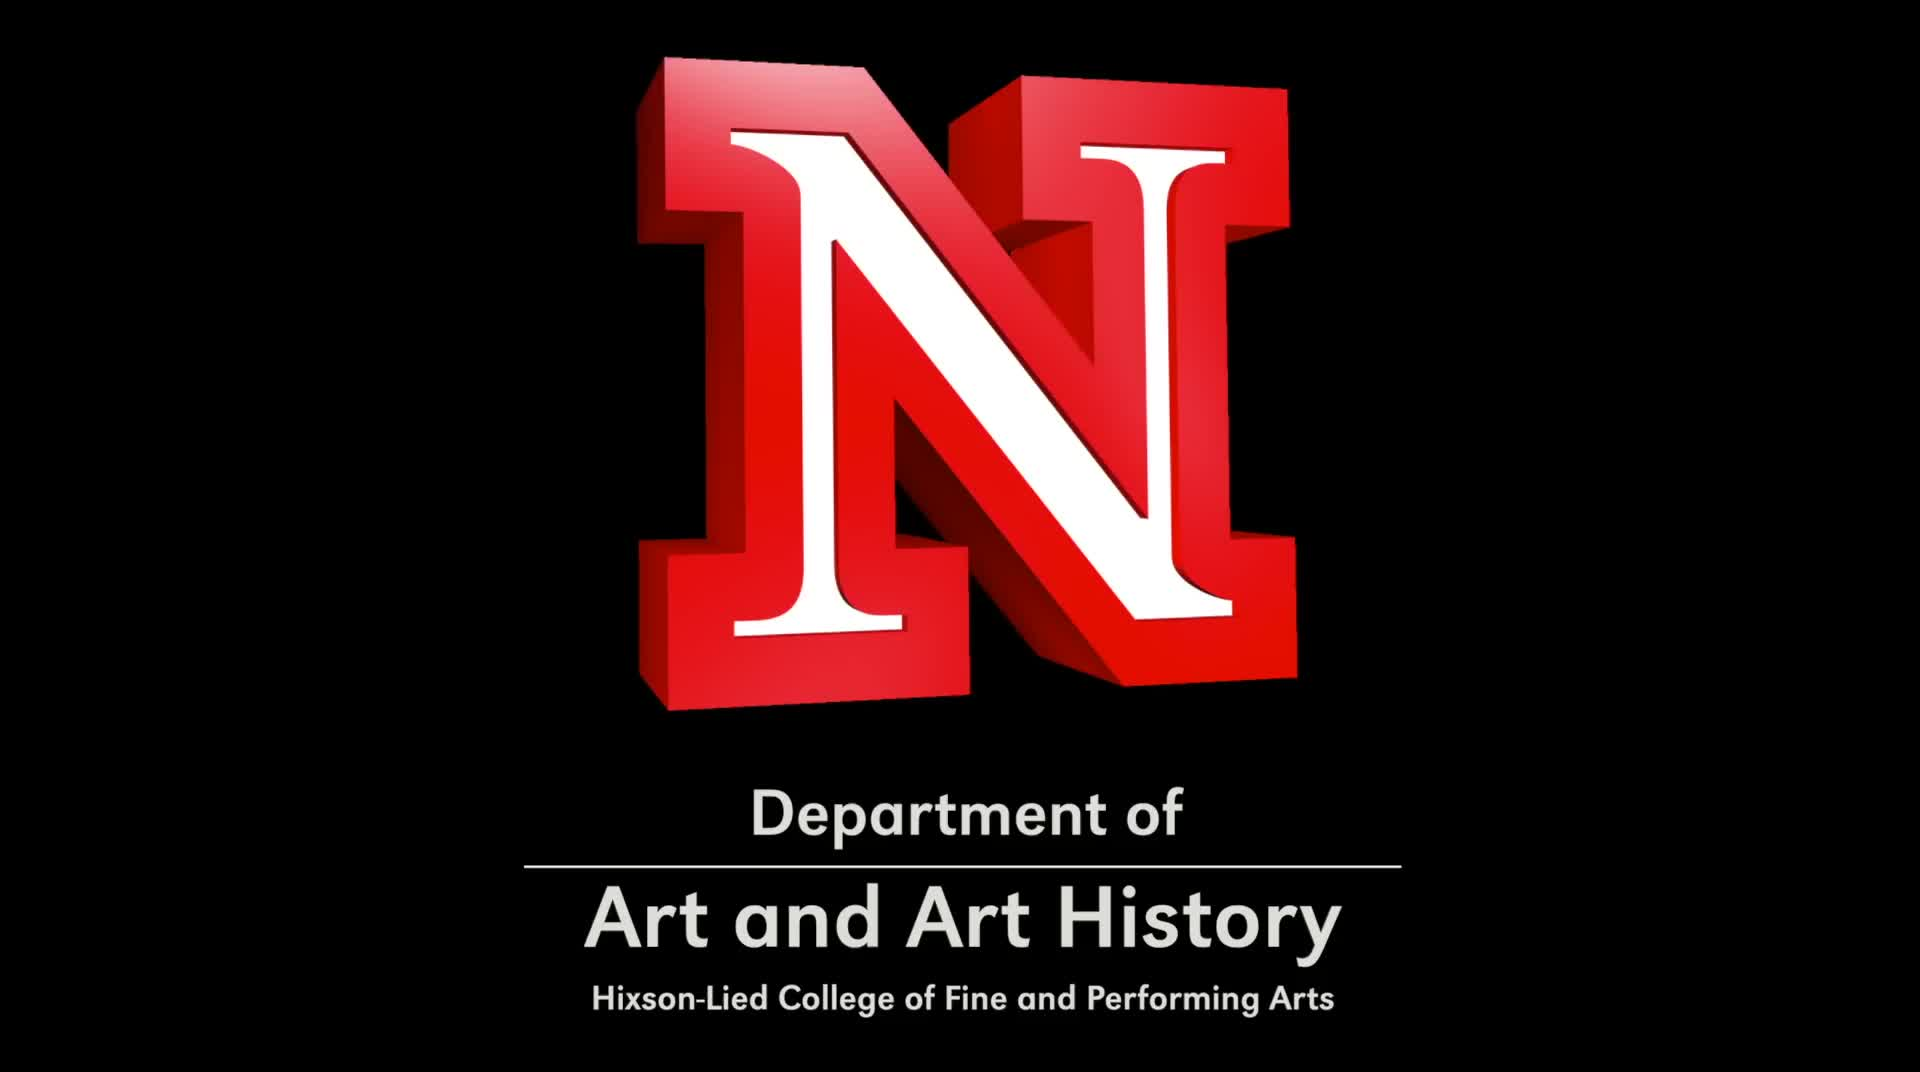 The 2013 Capstone Exhibition - Dept. of Art and Art History